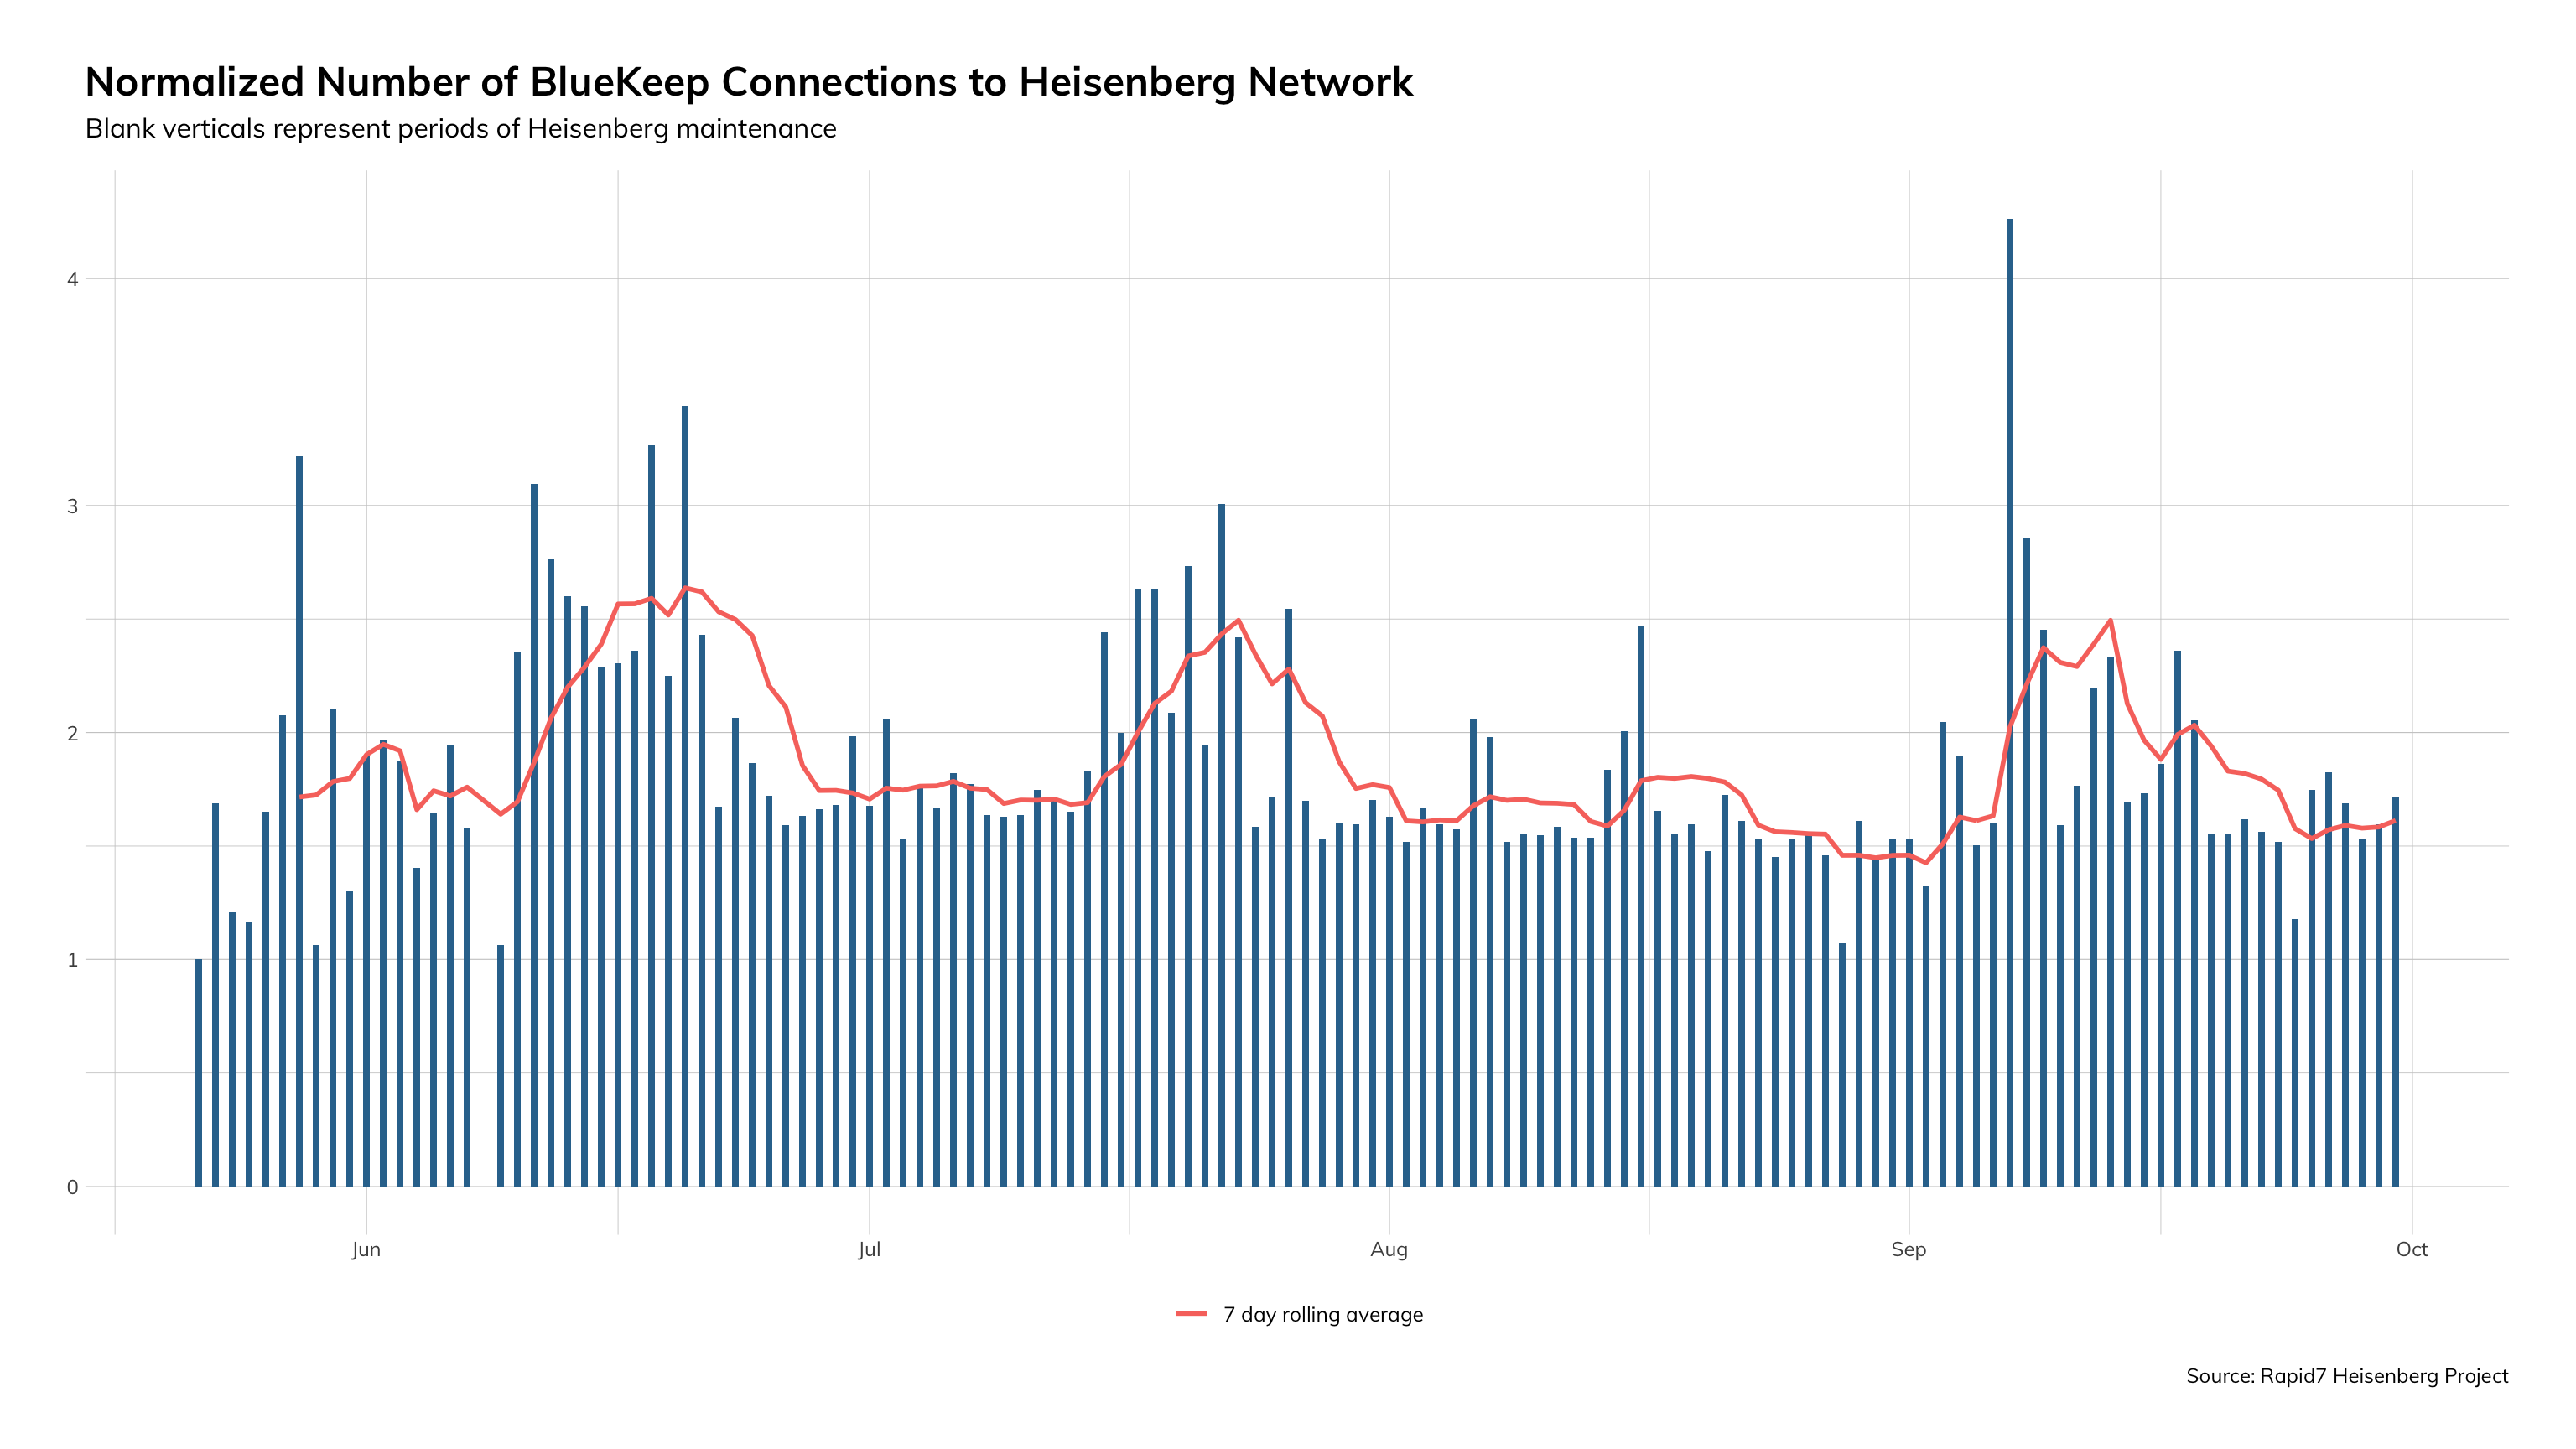 Graph showing the number of BlueKeep connections to our Heisenberg honeypot network